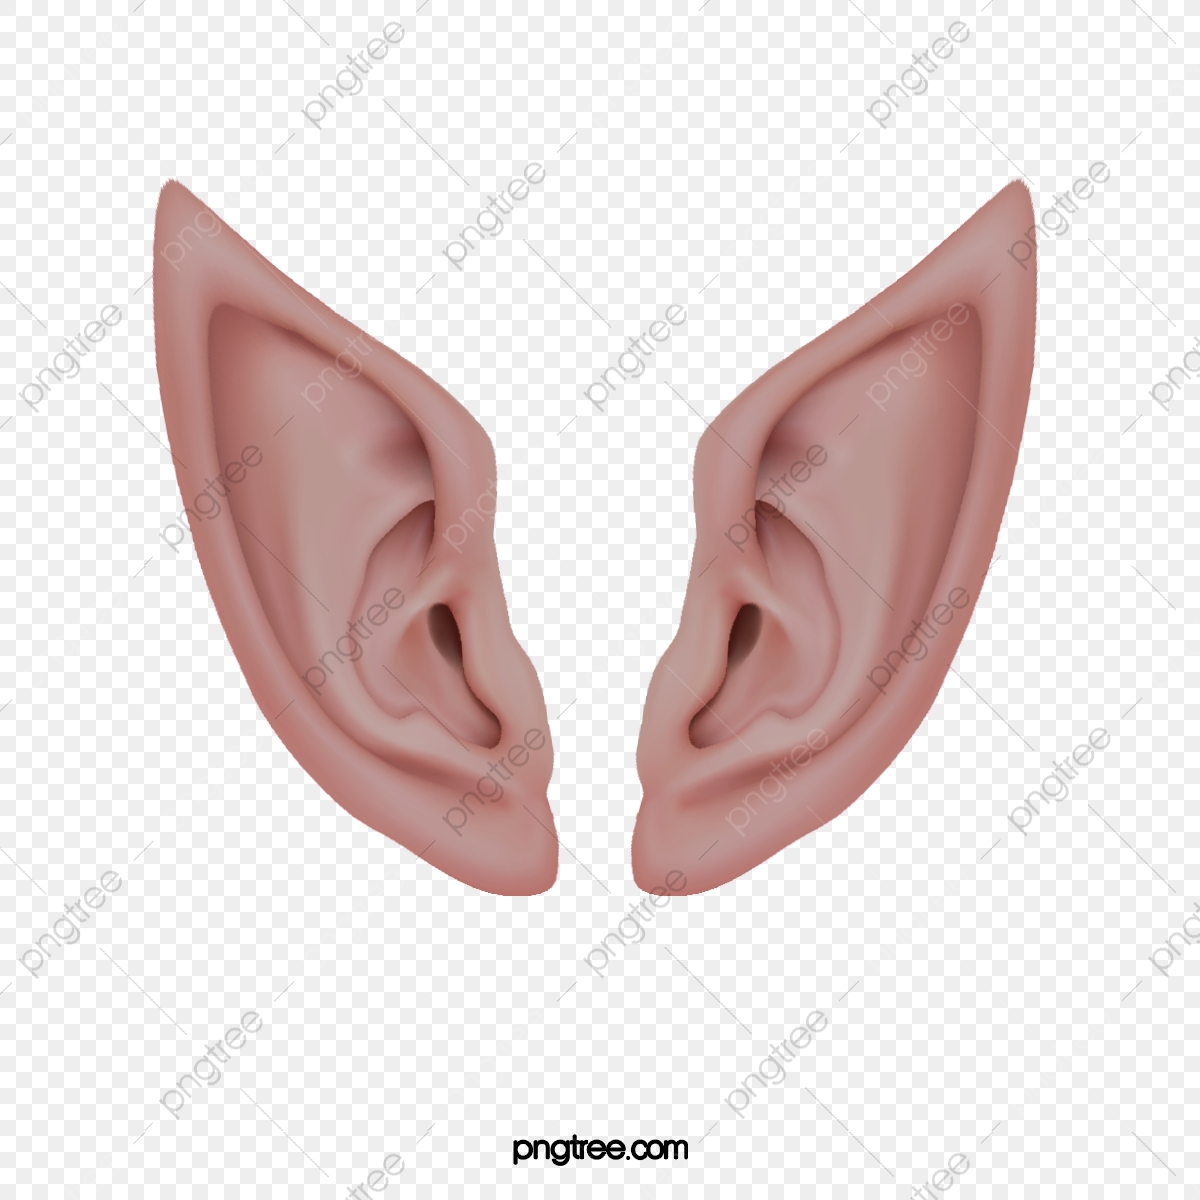 Elf Ears, Ear, Genius, Psd Layered Material PNG Transparent Clipart.